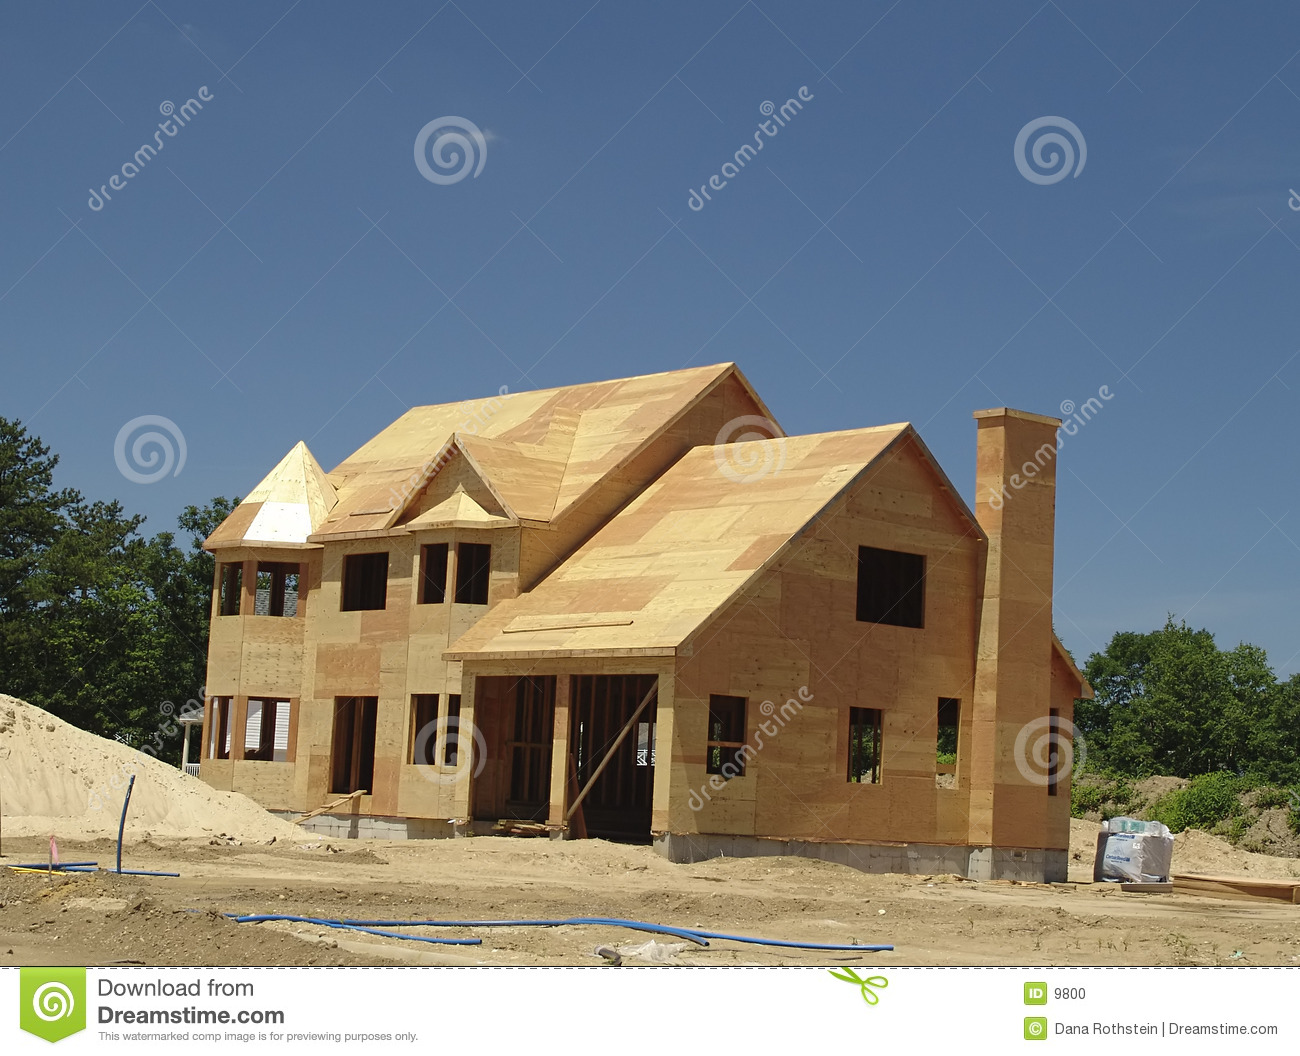 New home being built stock photo image 9800 for Houses that can be built for under 150k